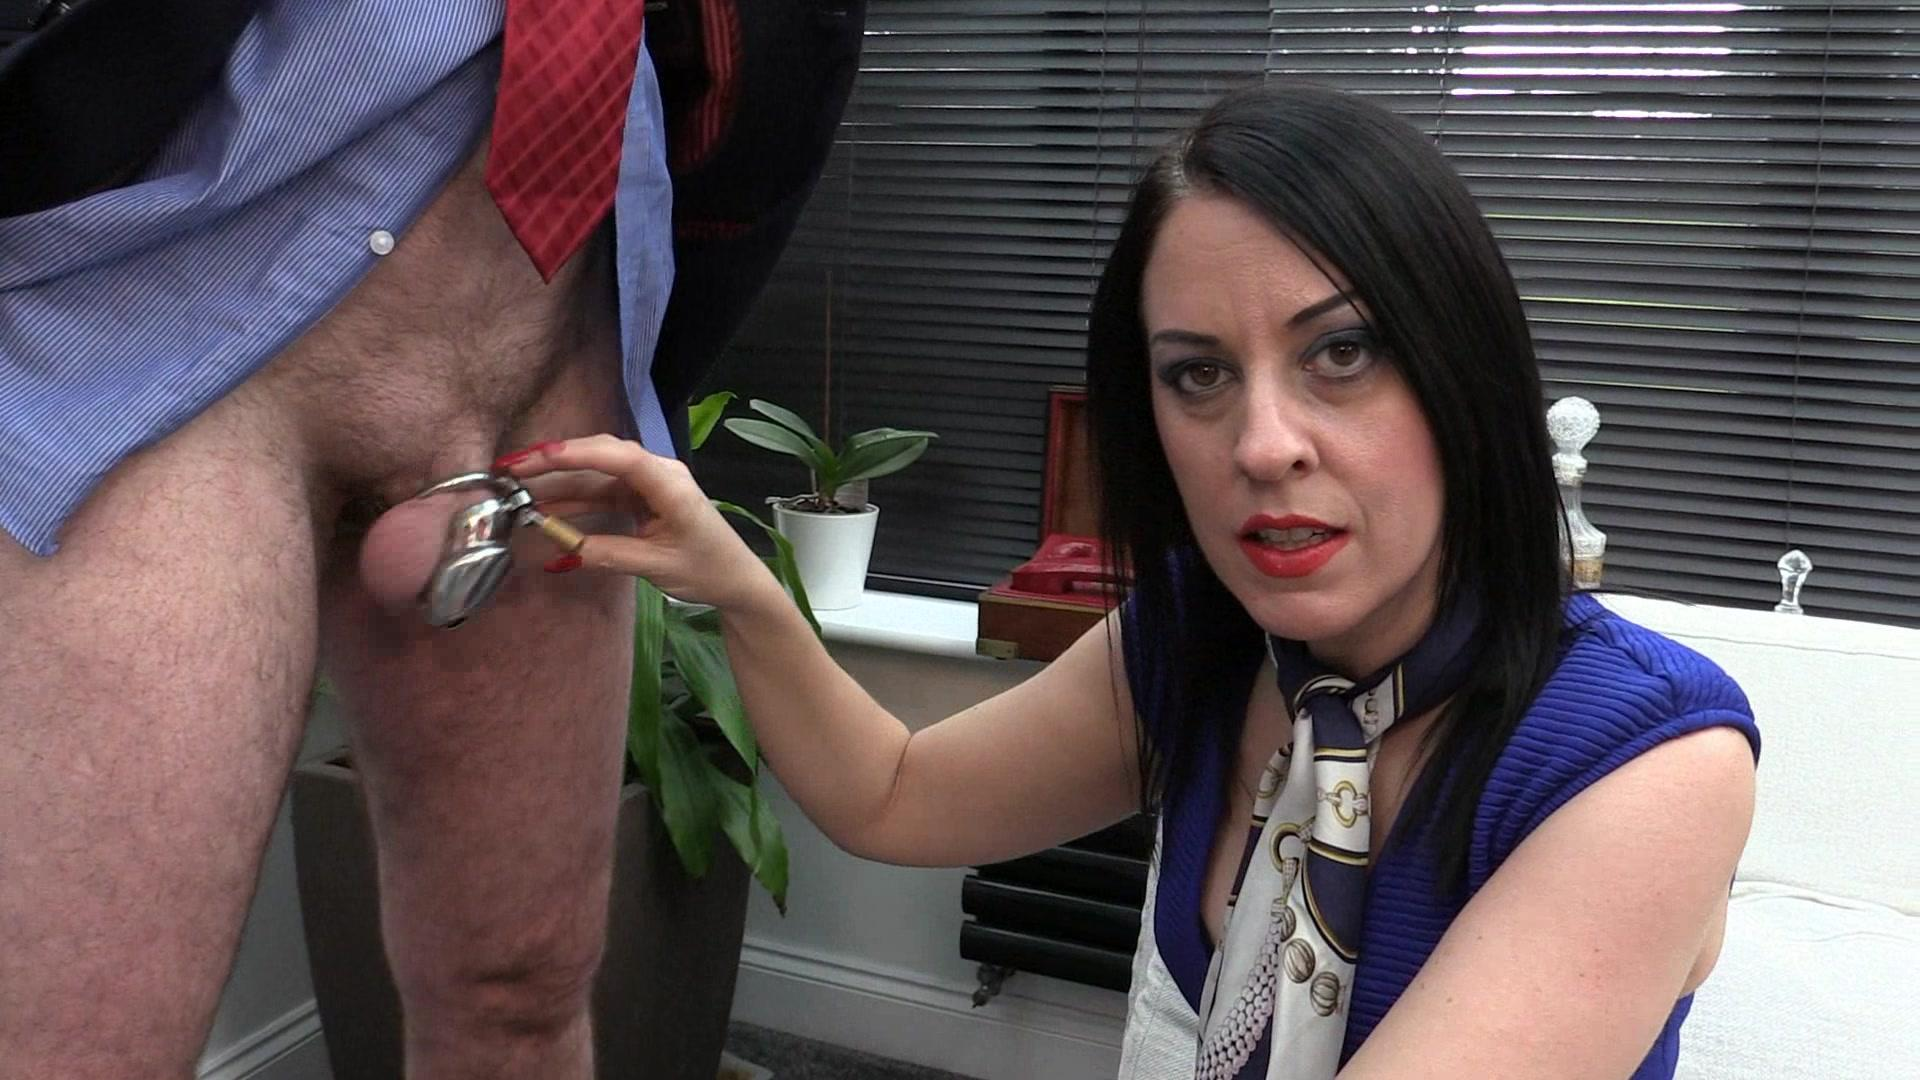 bitch-wife-chastity-hubby-stories